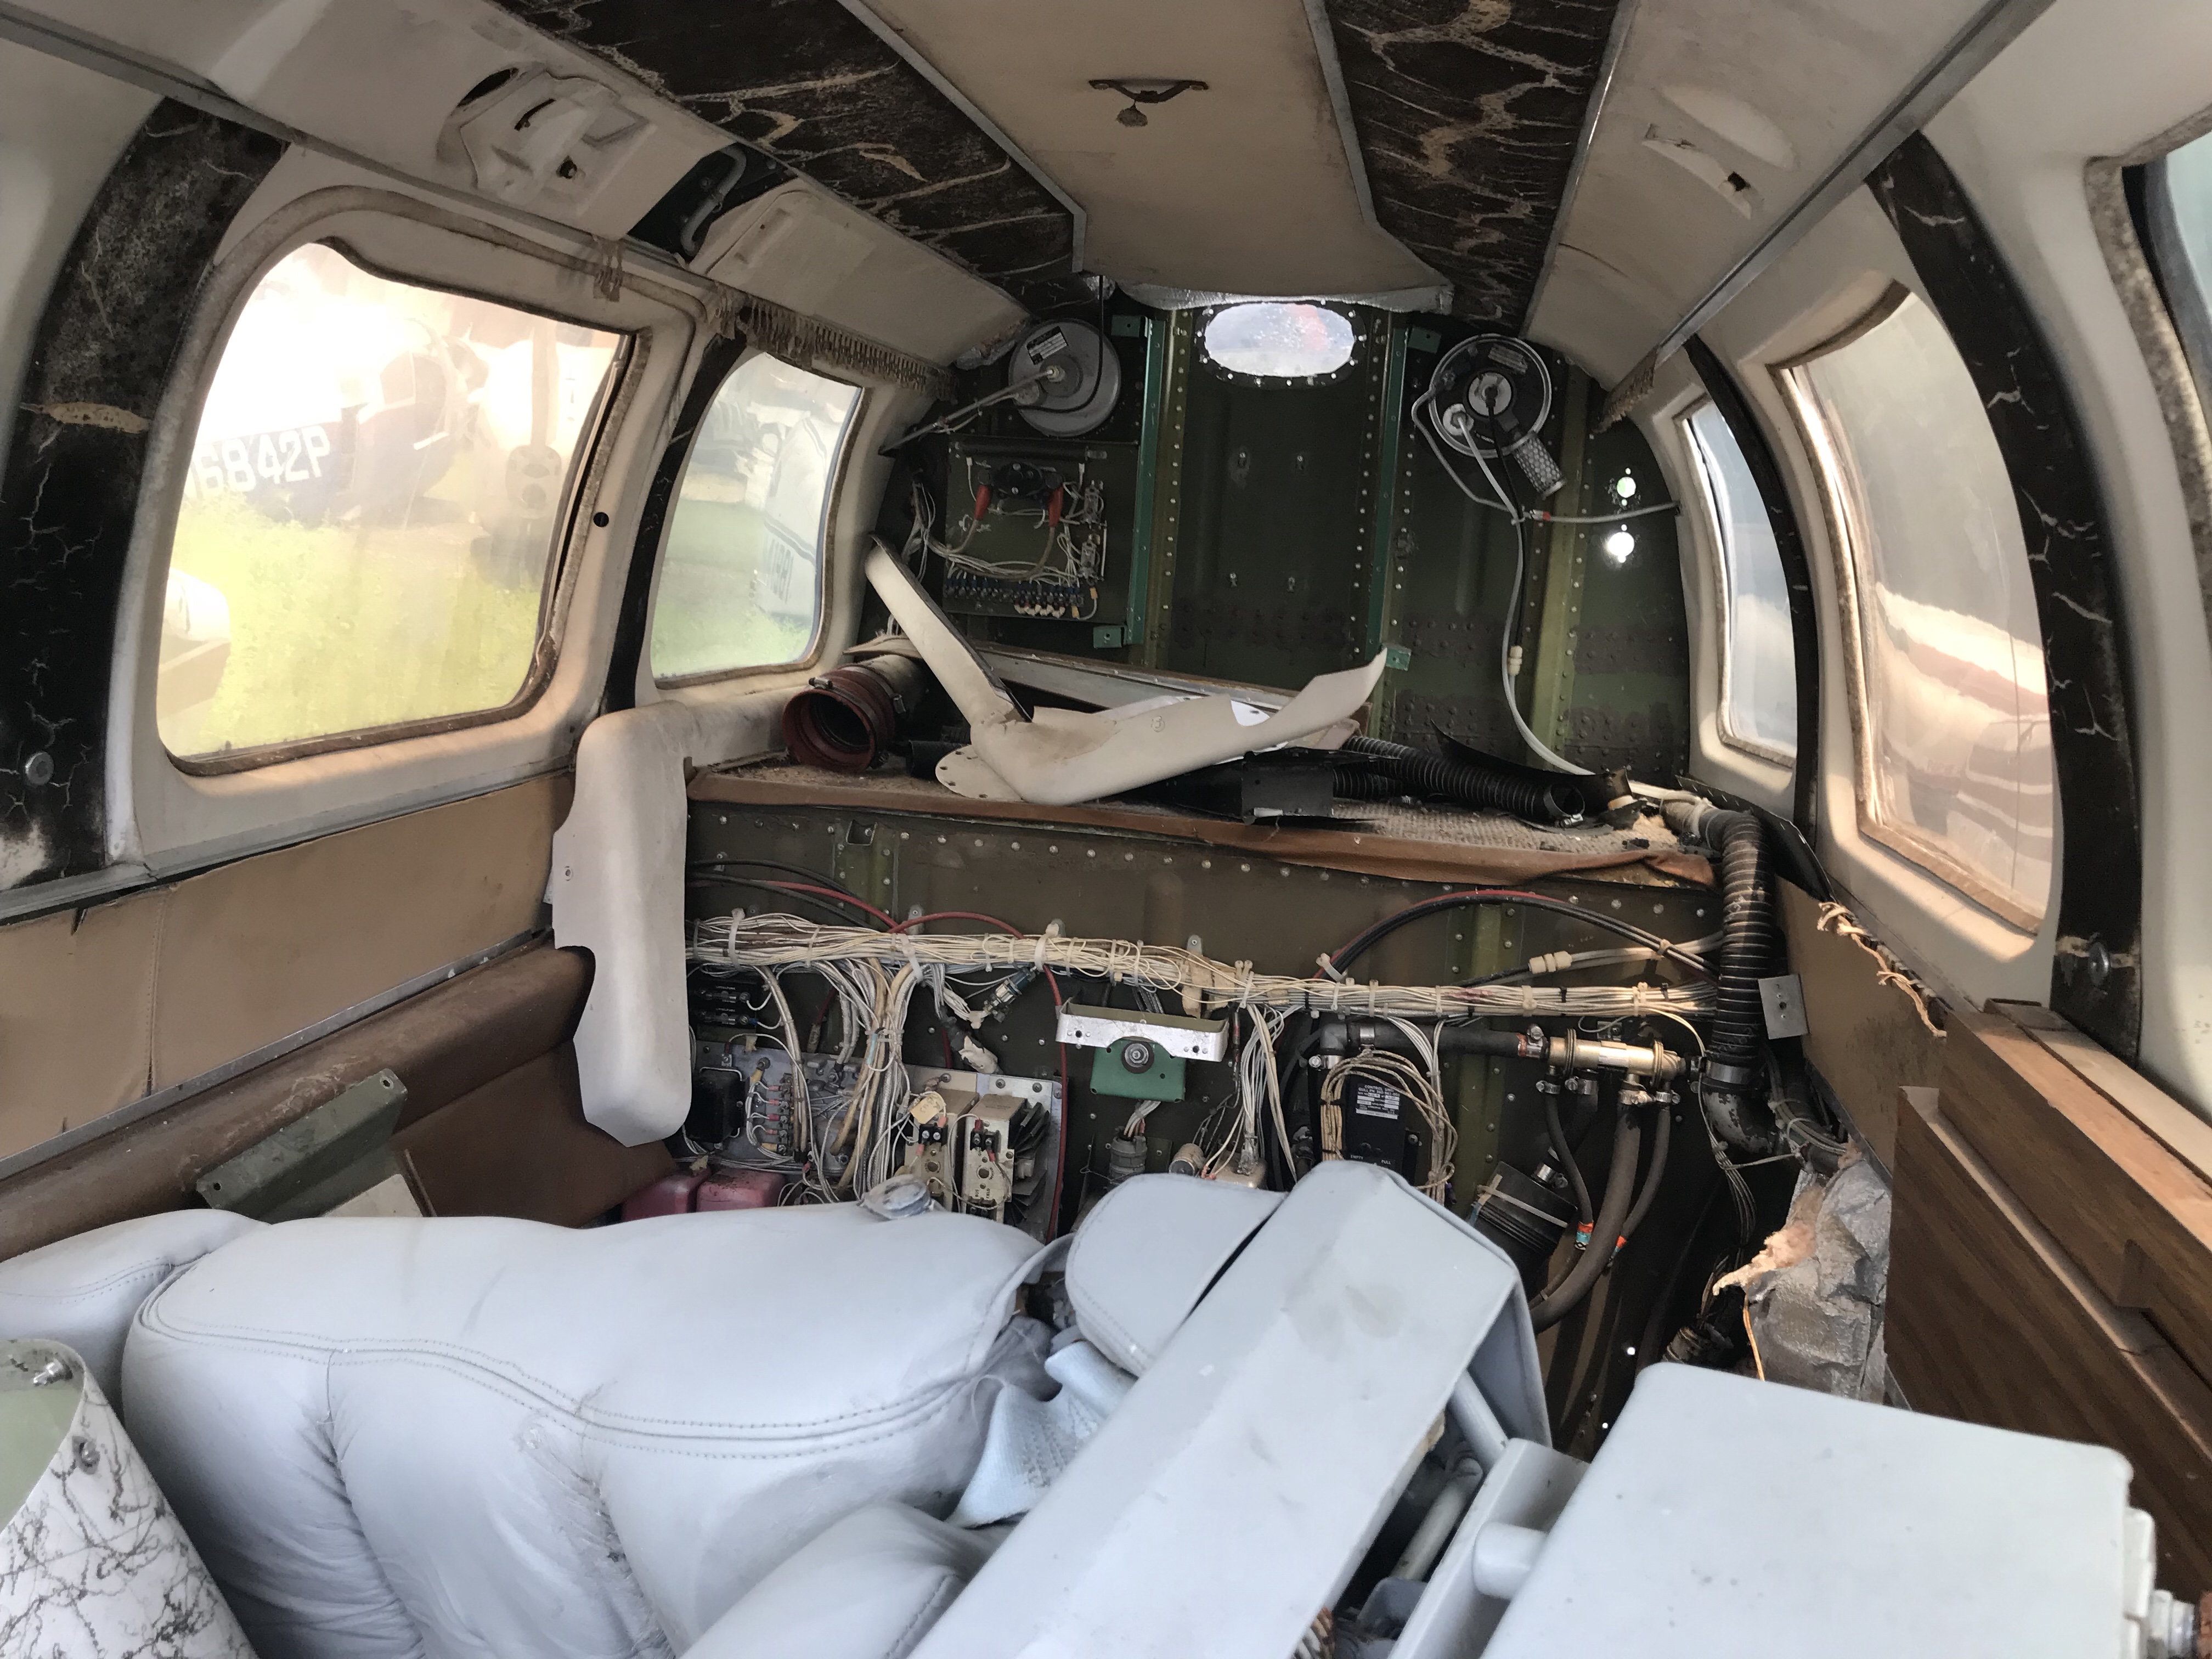 Not Your Typical Junkyard - A Visit to an Aircraft Salvage